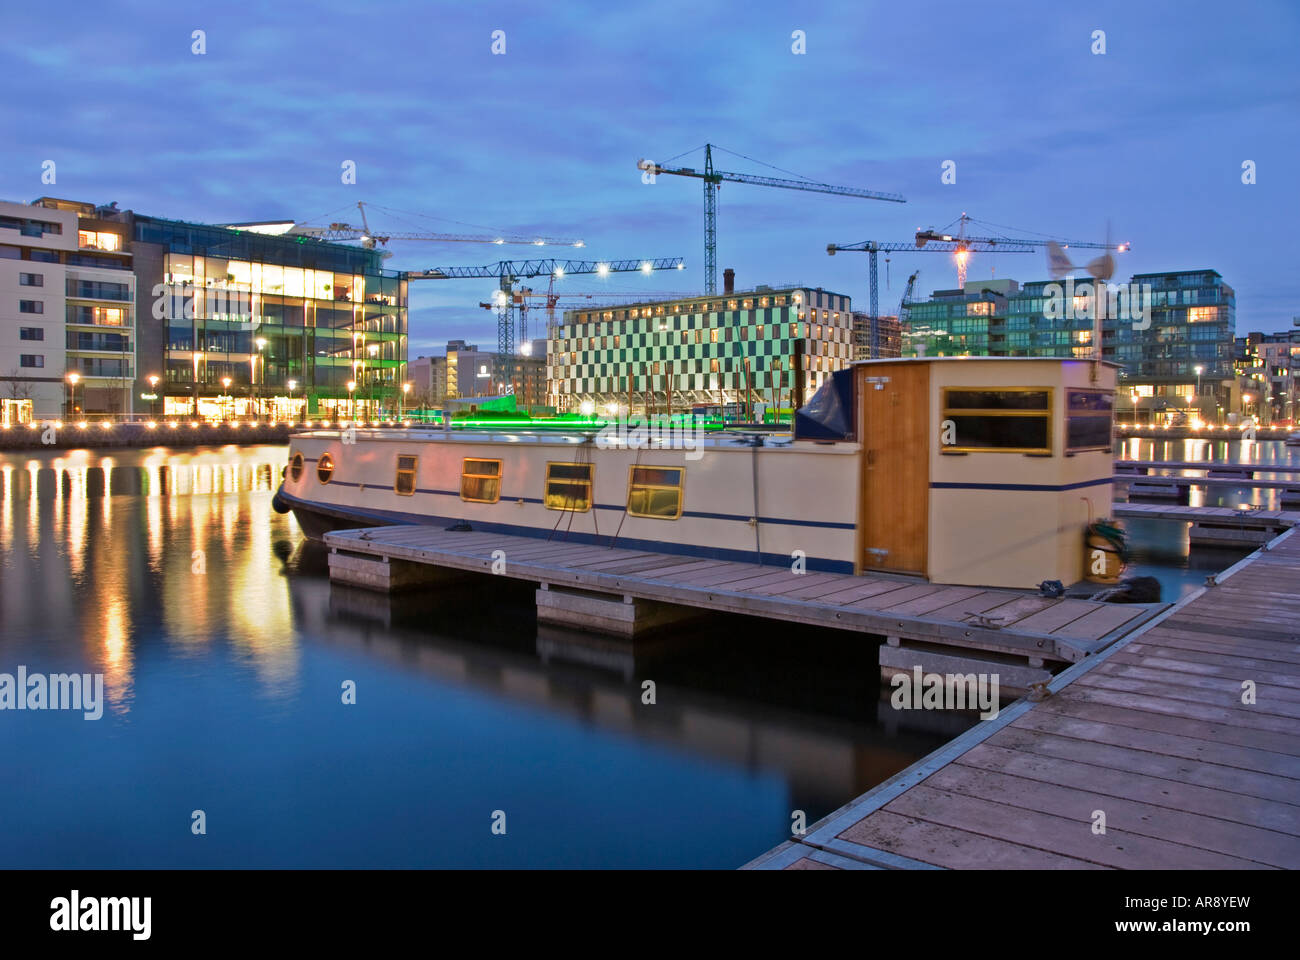 A Canal Barge Moored at the Charlotte Quay Marina, Grand Canal Docks, Dublin - Stock Image